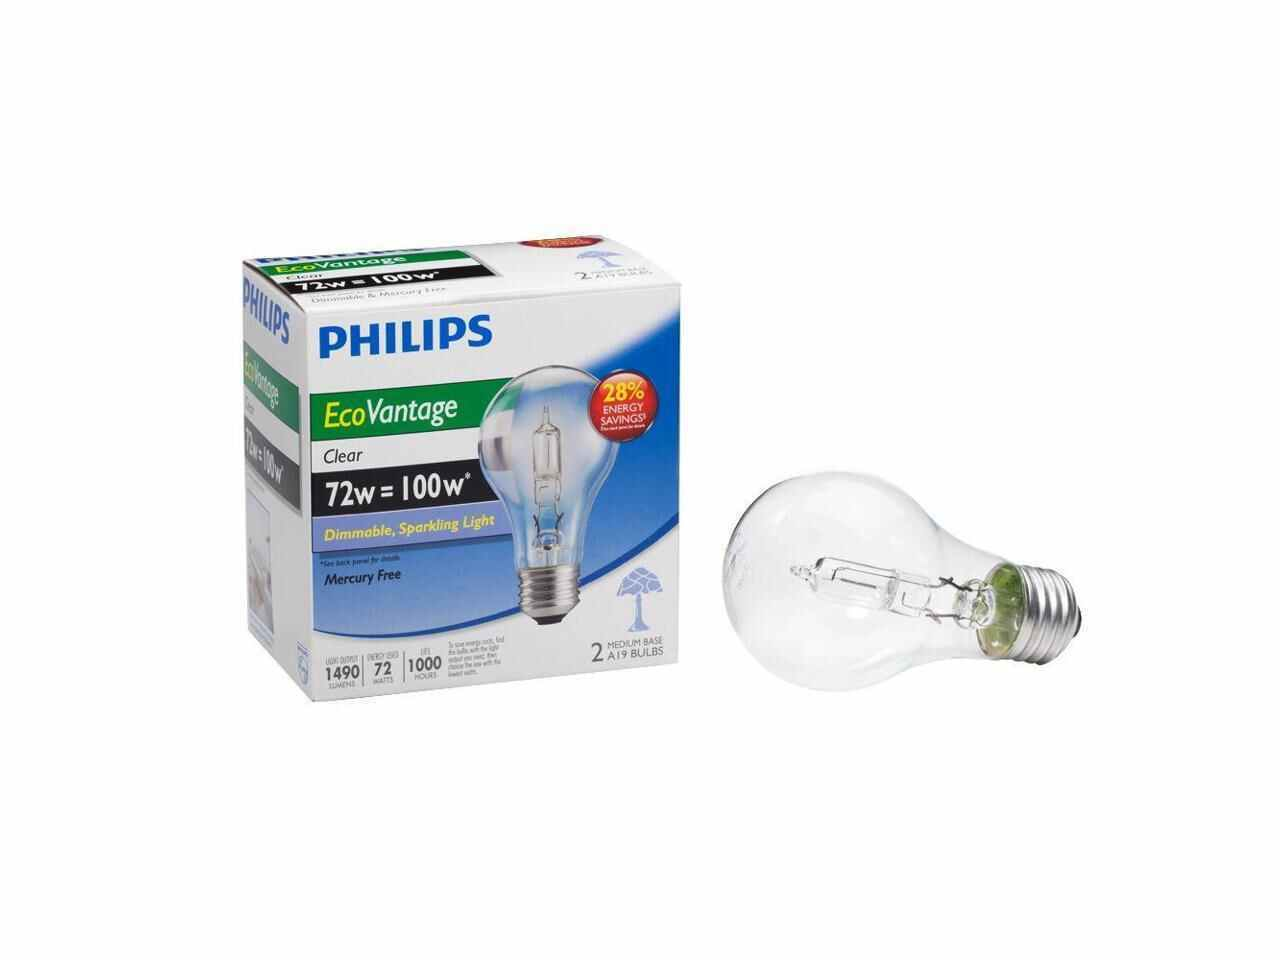 Eco-Vantage 72W Halogen Light Bulb in Clear